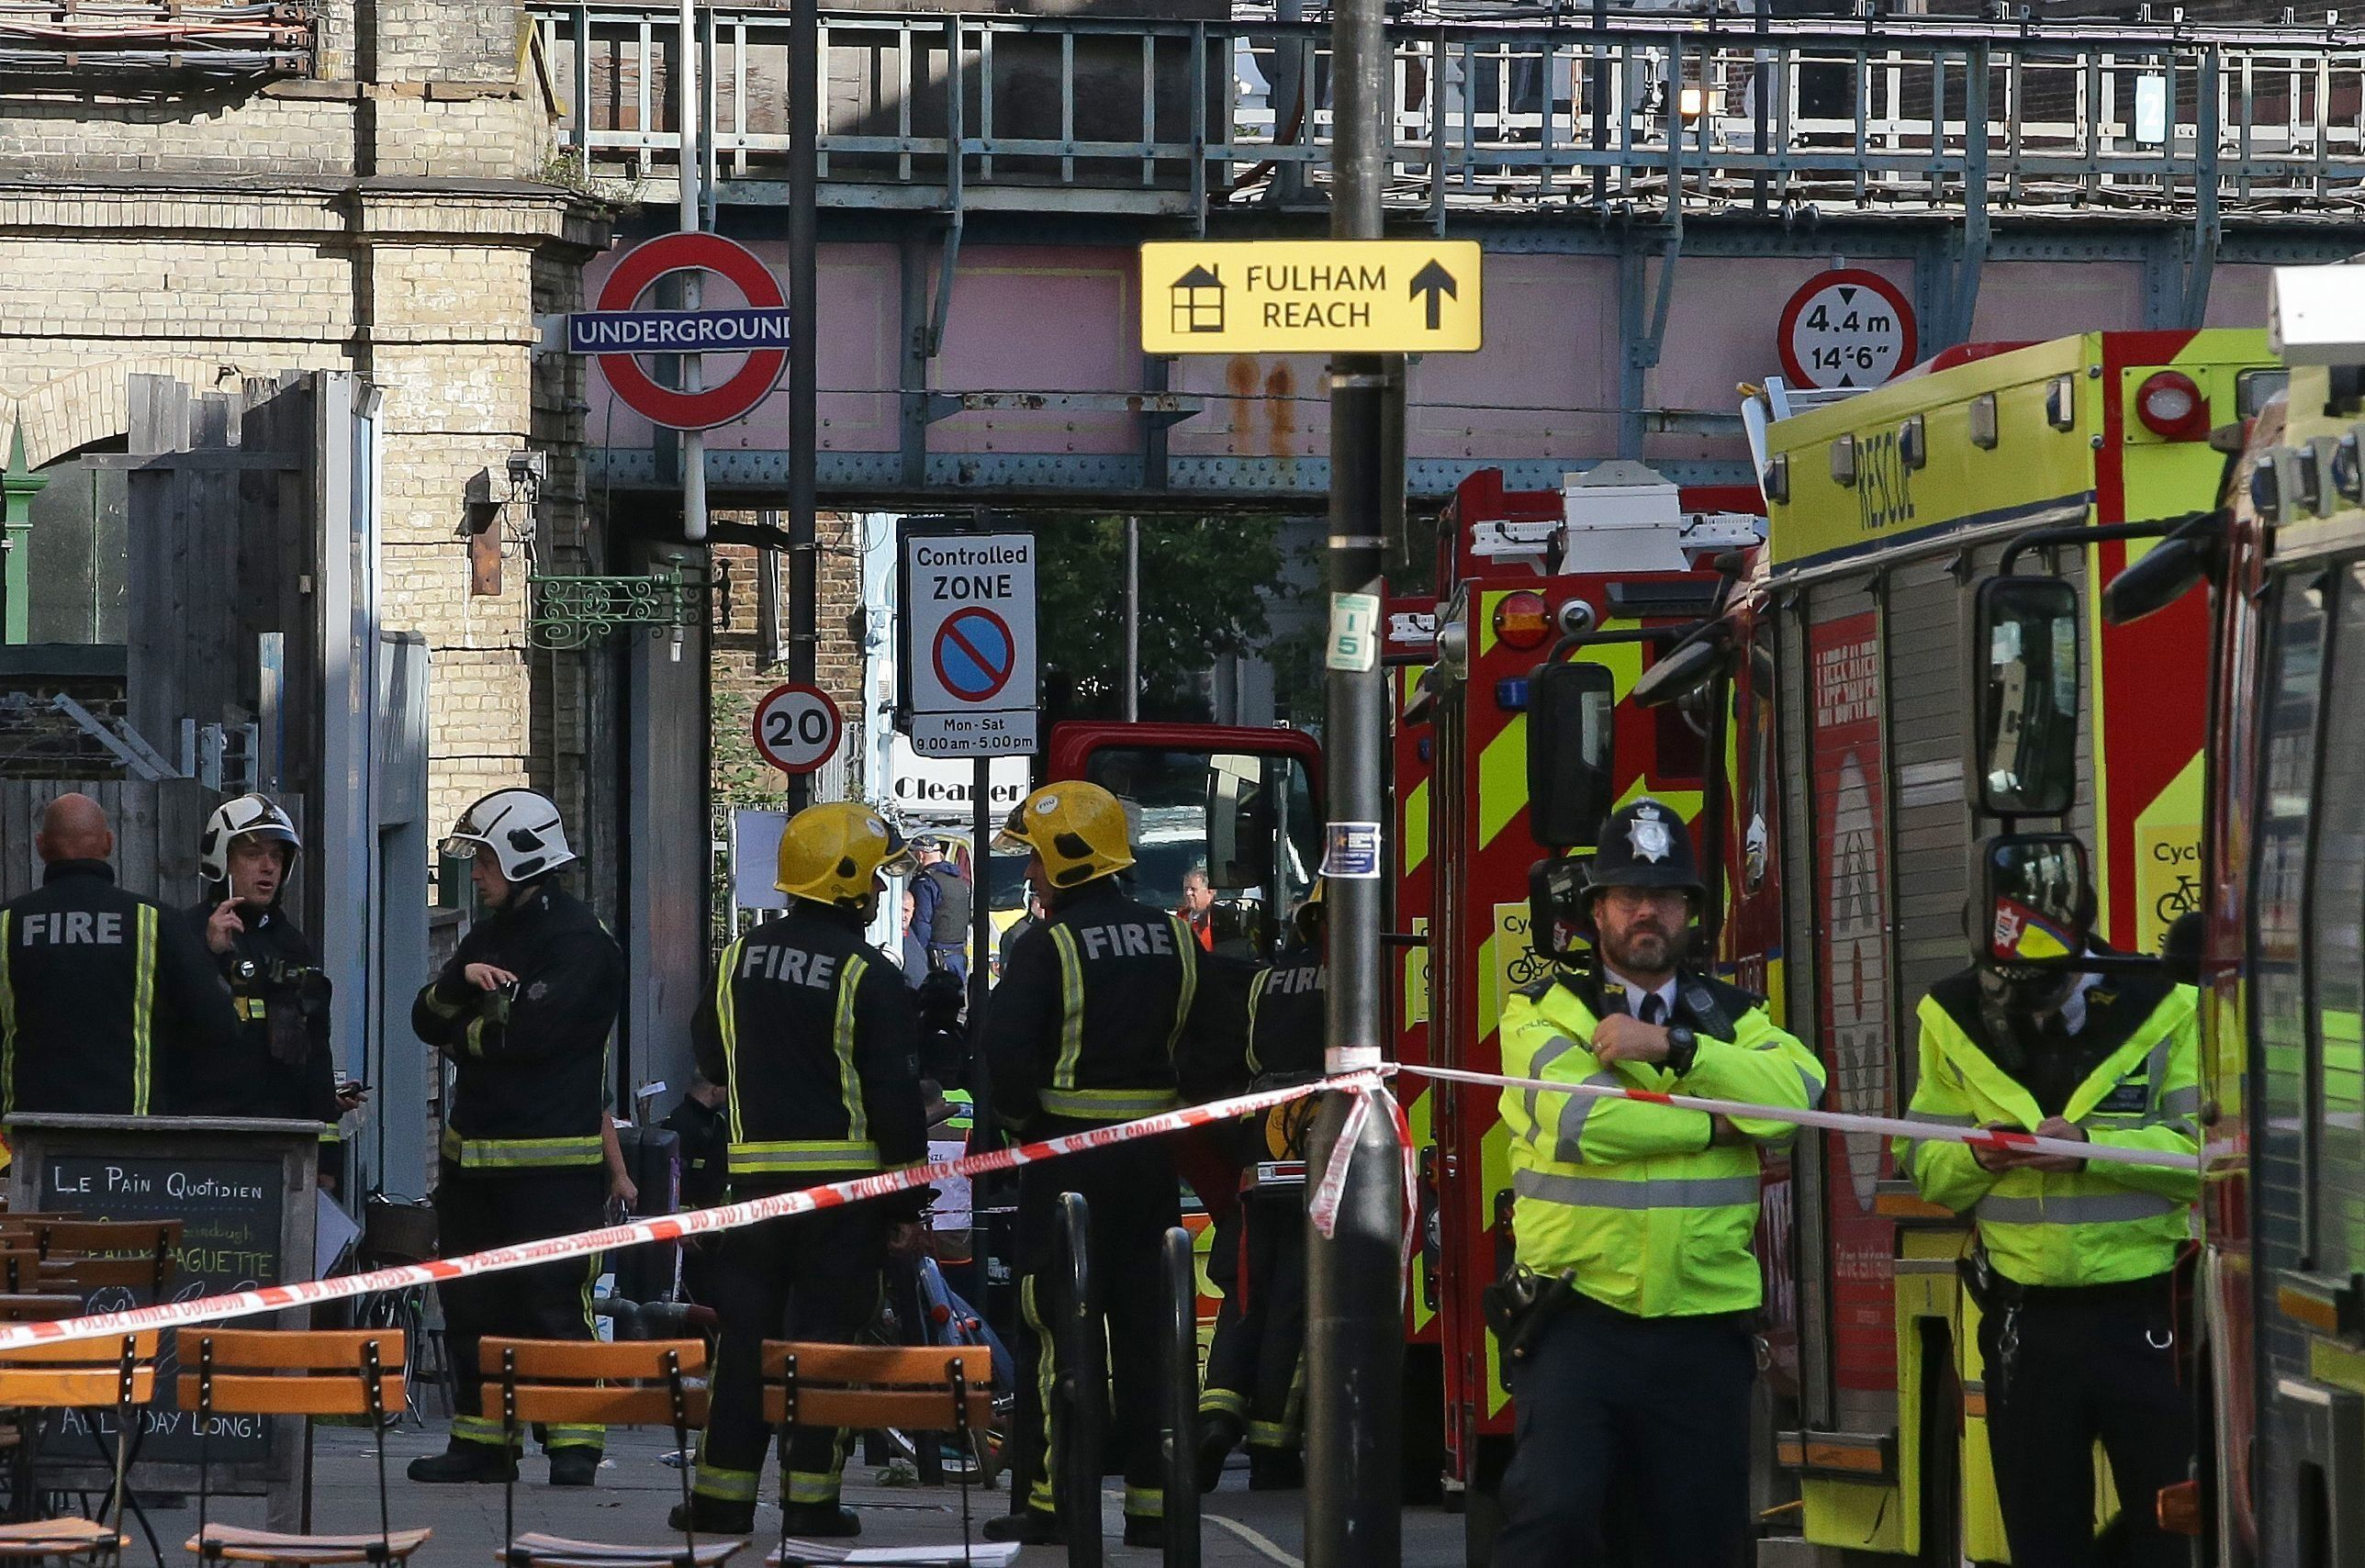 Parsons Green Terror Attack Sees Police Arrest Man In